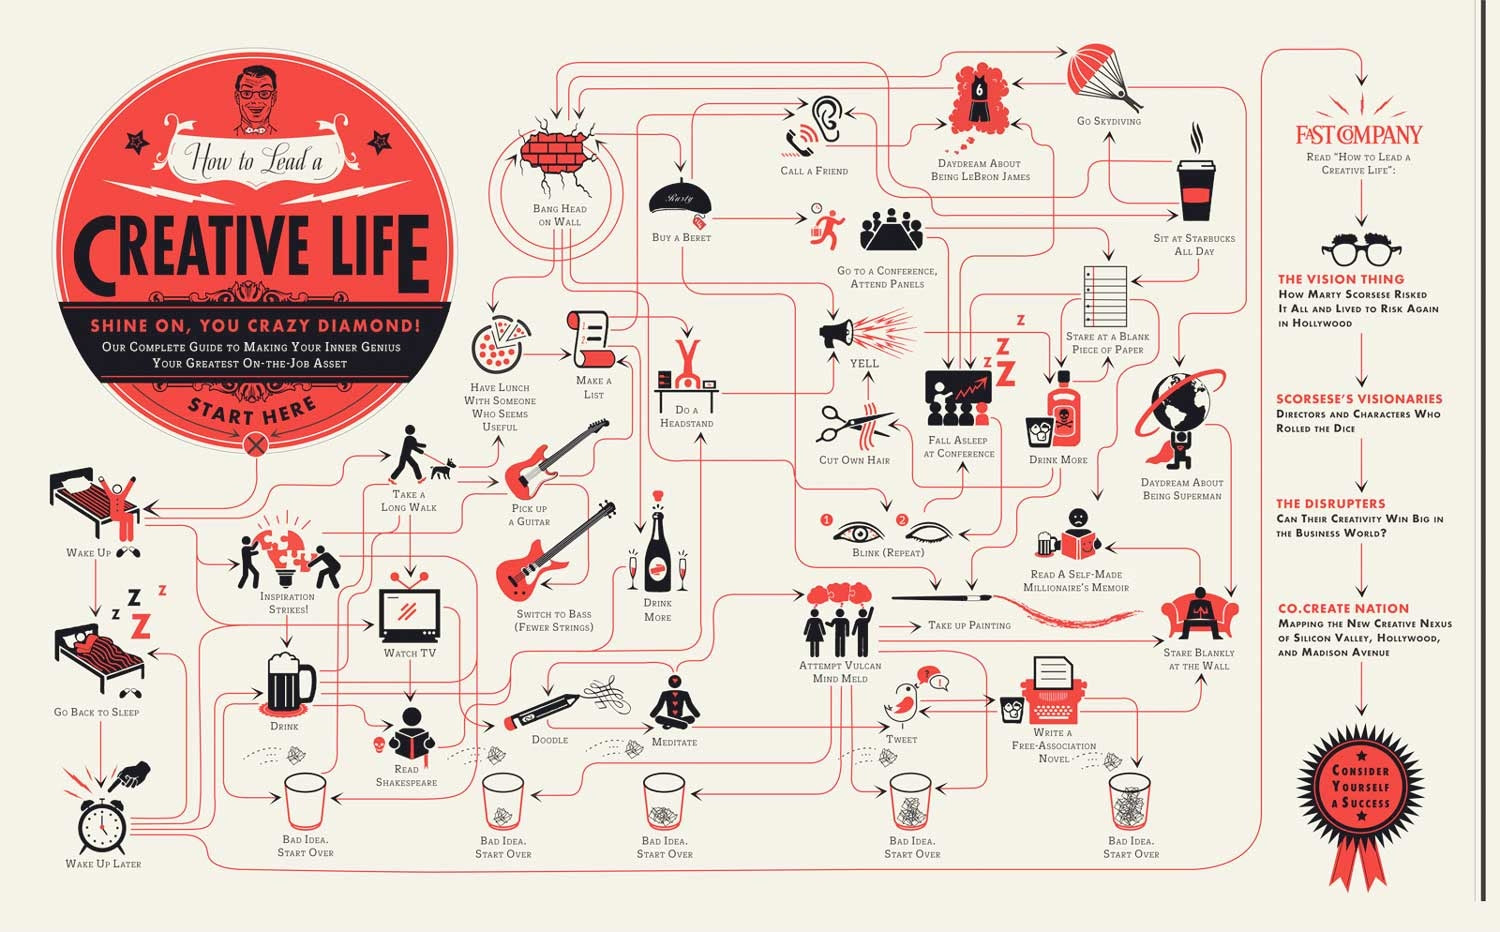 From http://www.fastcompany.com/1793515/how-lead-creative-life